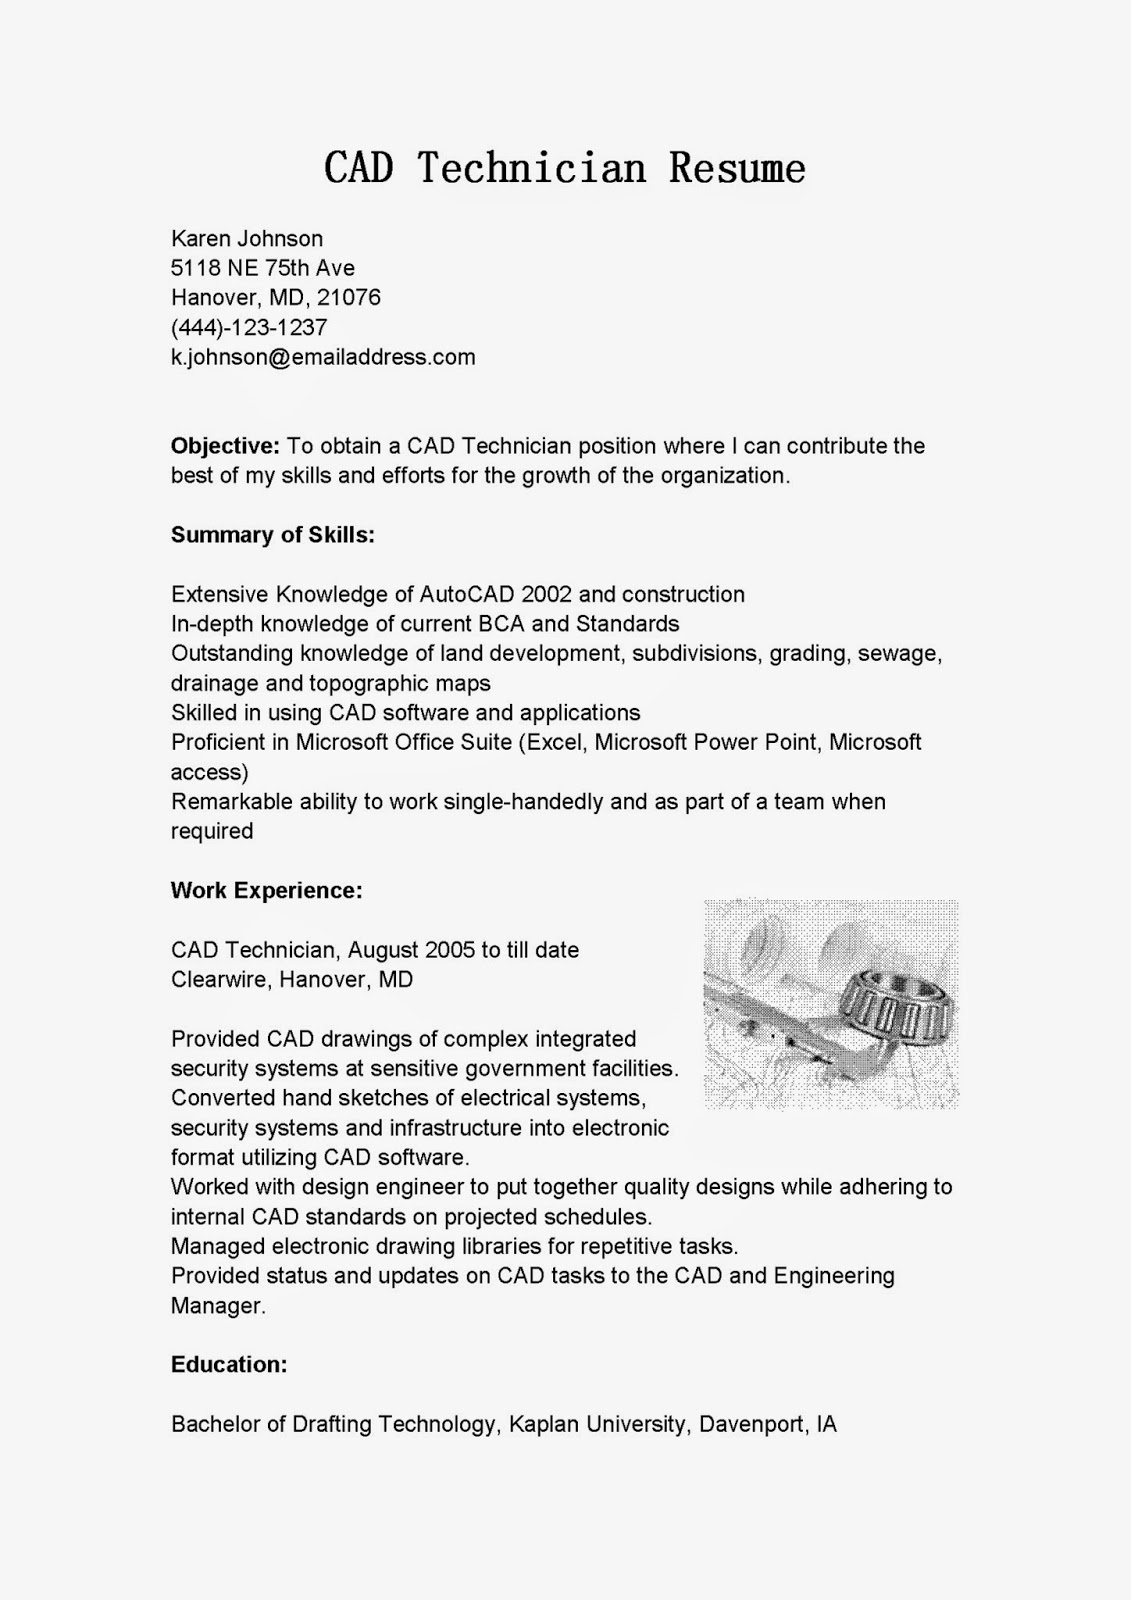 Autocad engineer cover letter